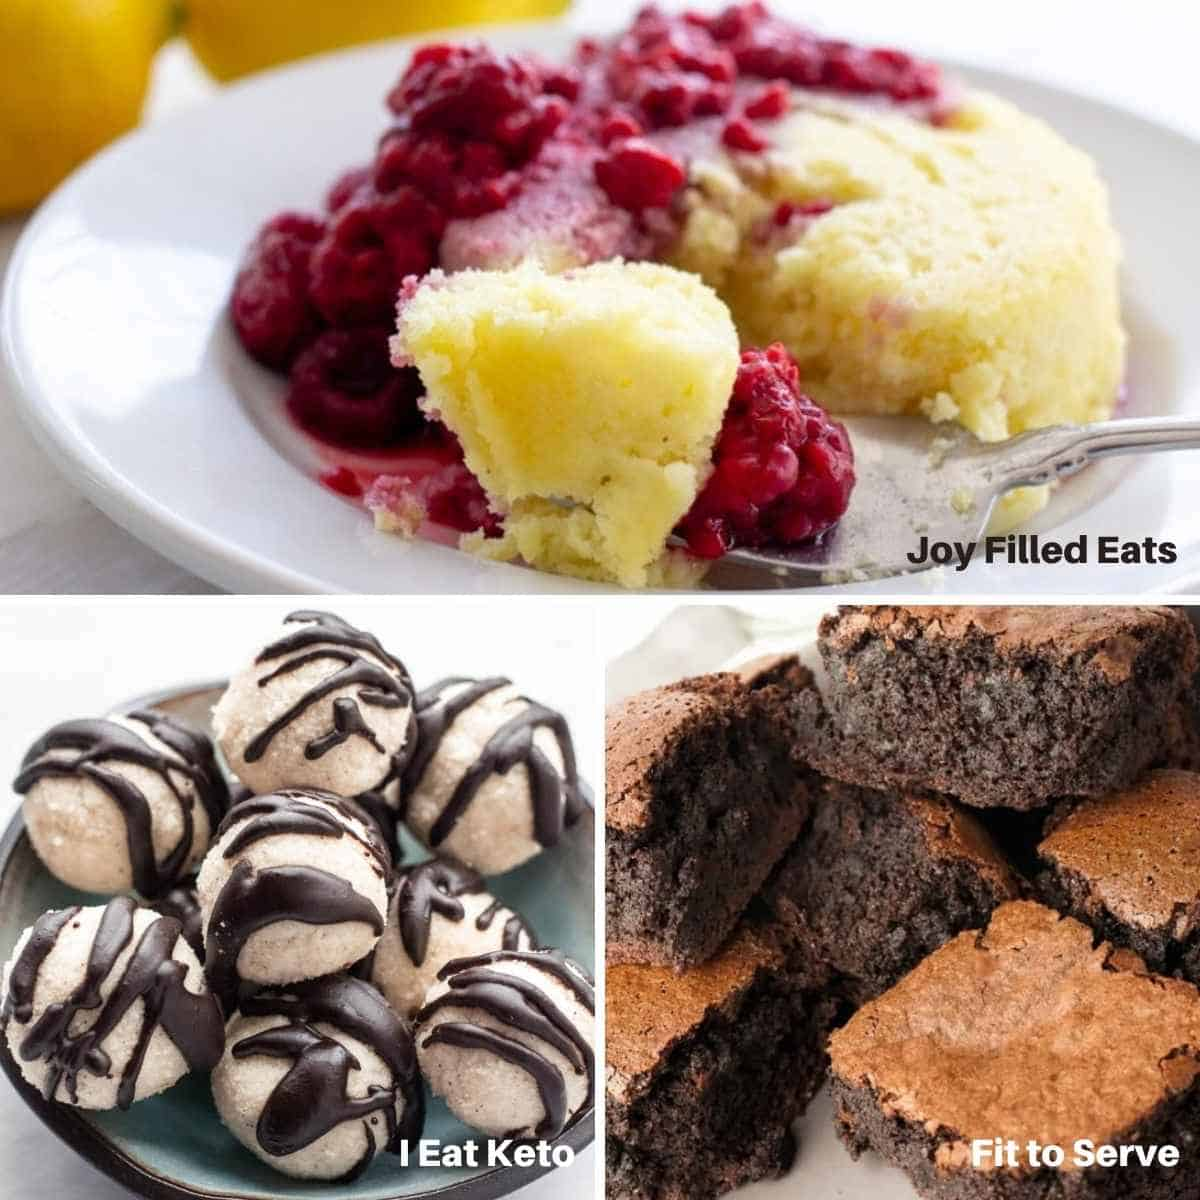 Coocnut Flour Recipes 1 - 22 Keto Easter Desserts and Candy